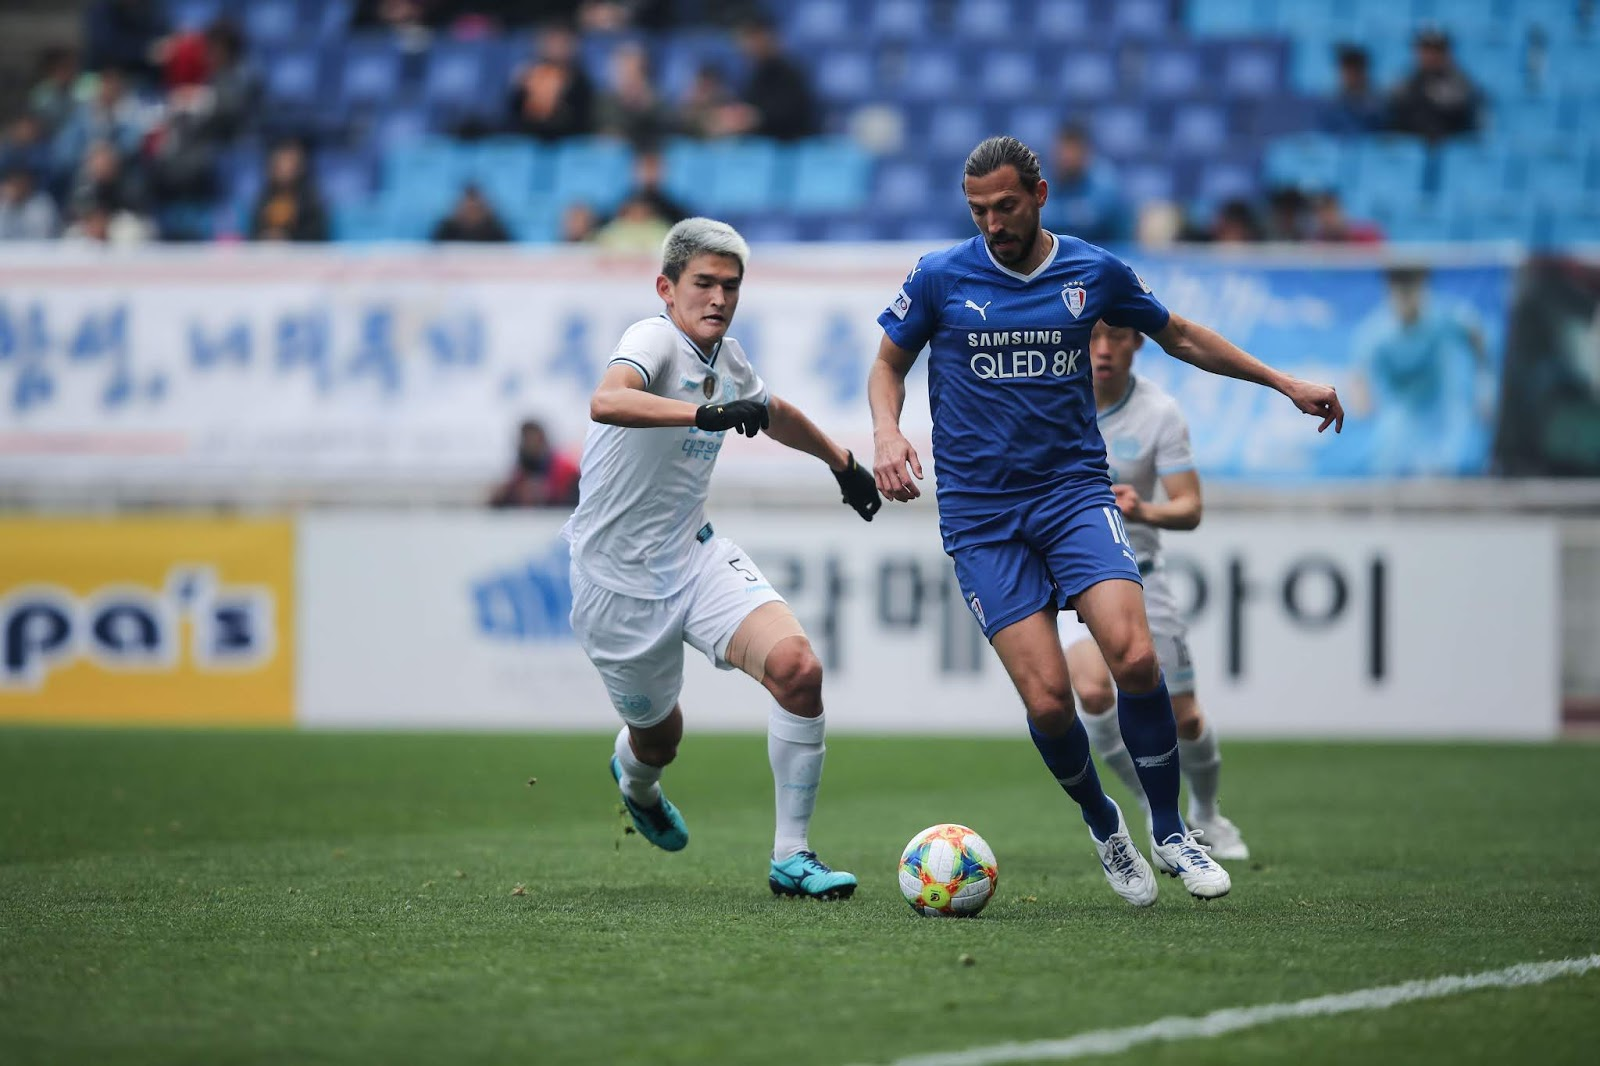 Super Match Preview: Suwon Bluewings vs FC Seoul K League 1 Round 10